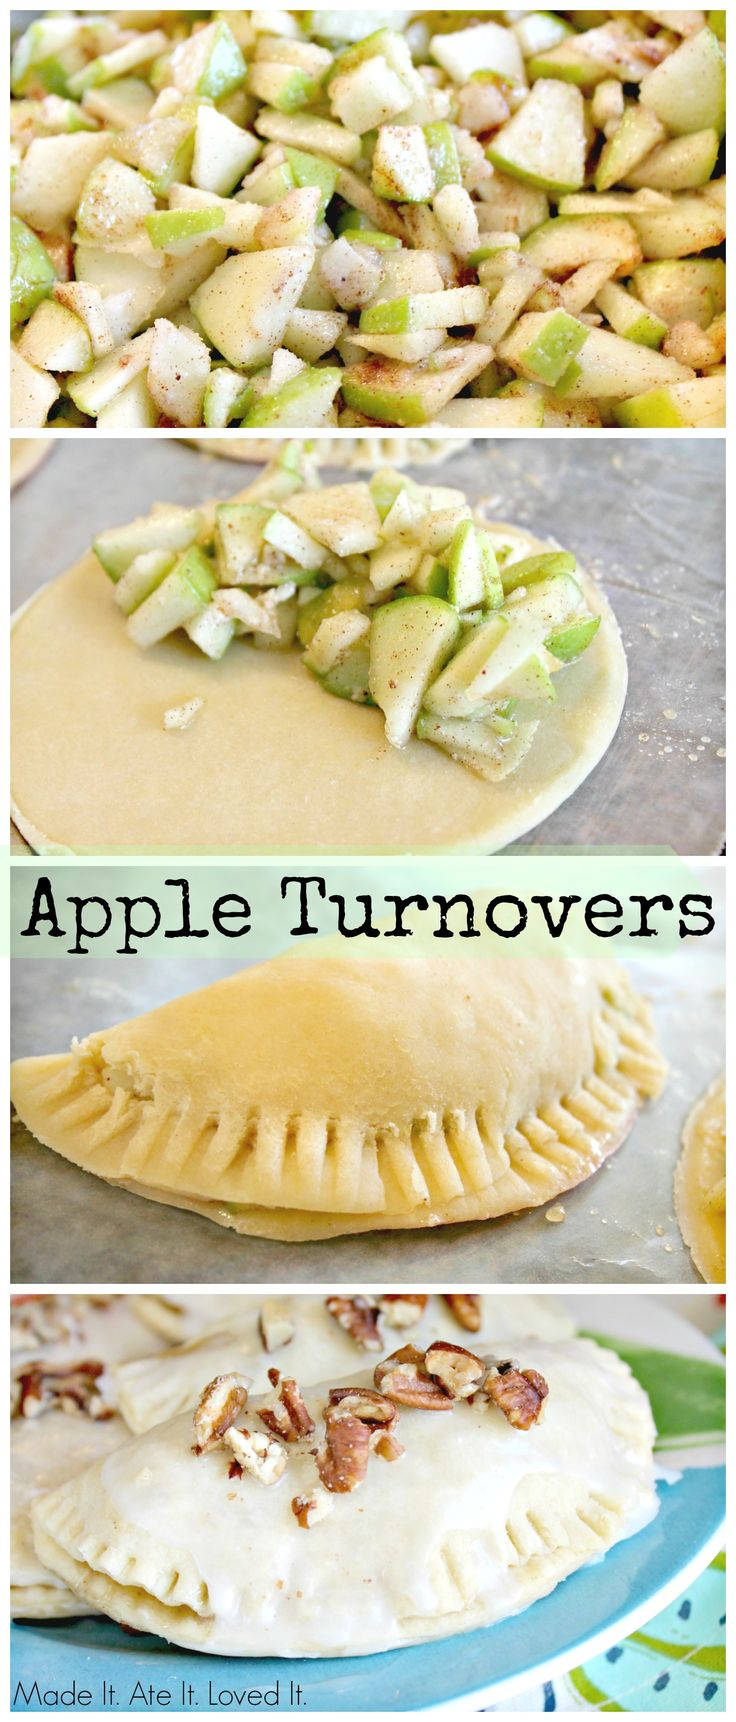 apple turnovers | Desserts | Pinterest | Pastries, Fall desserts and ...